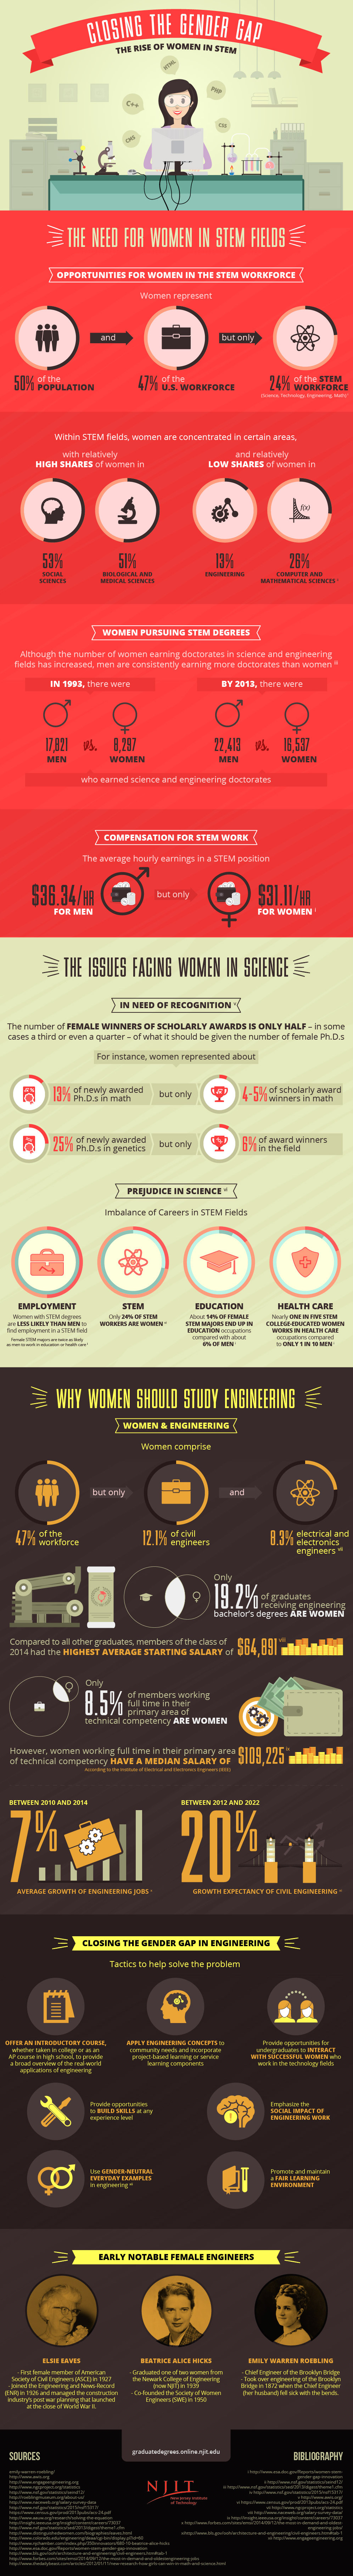 Engineering - Gender Gap